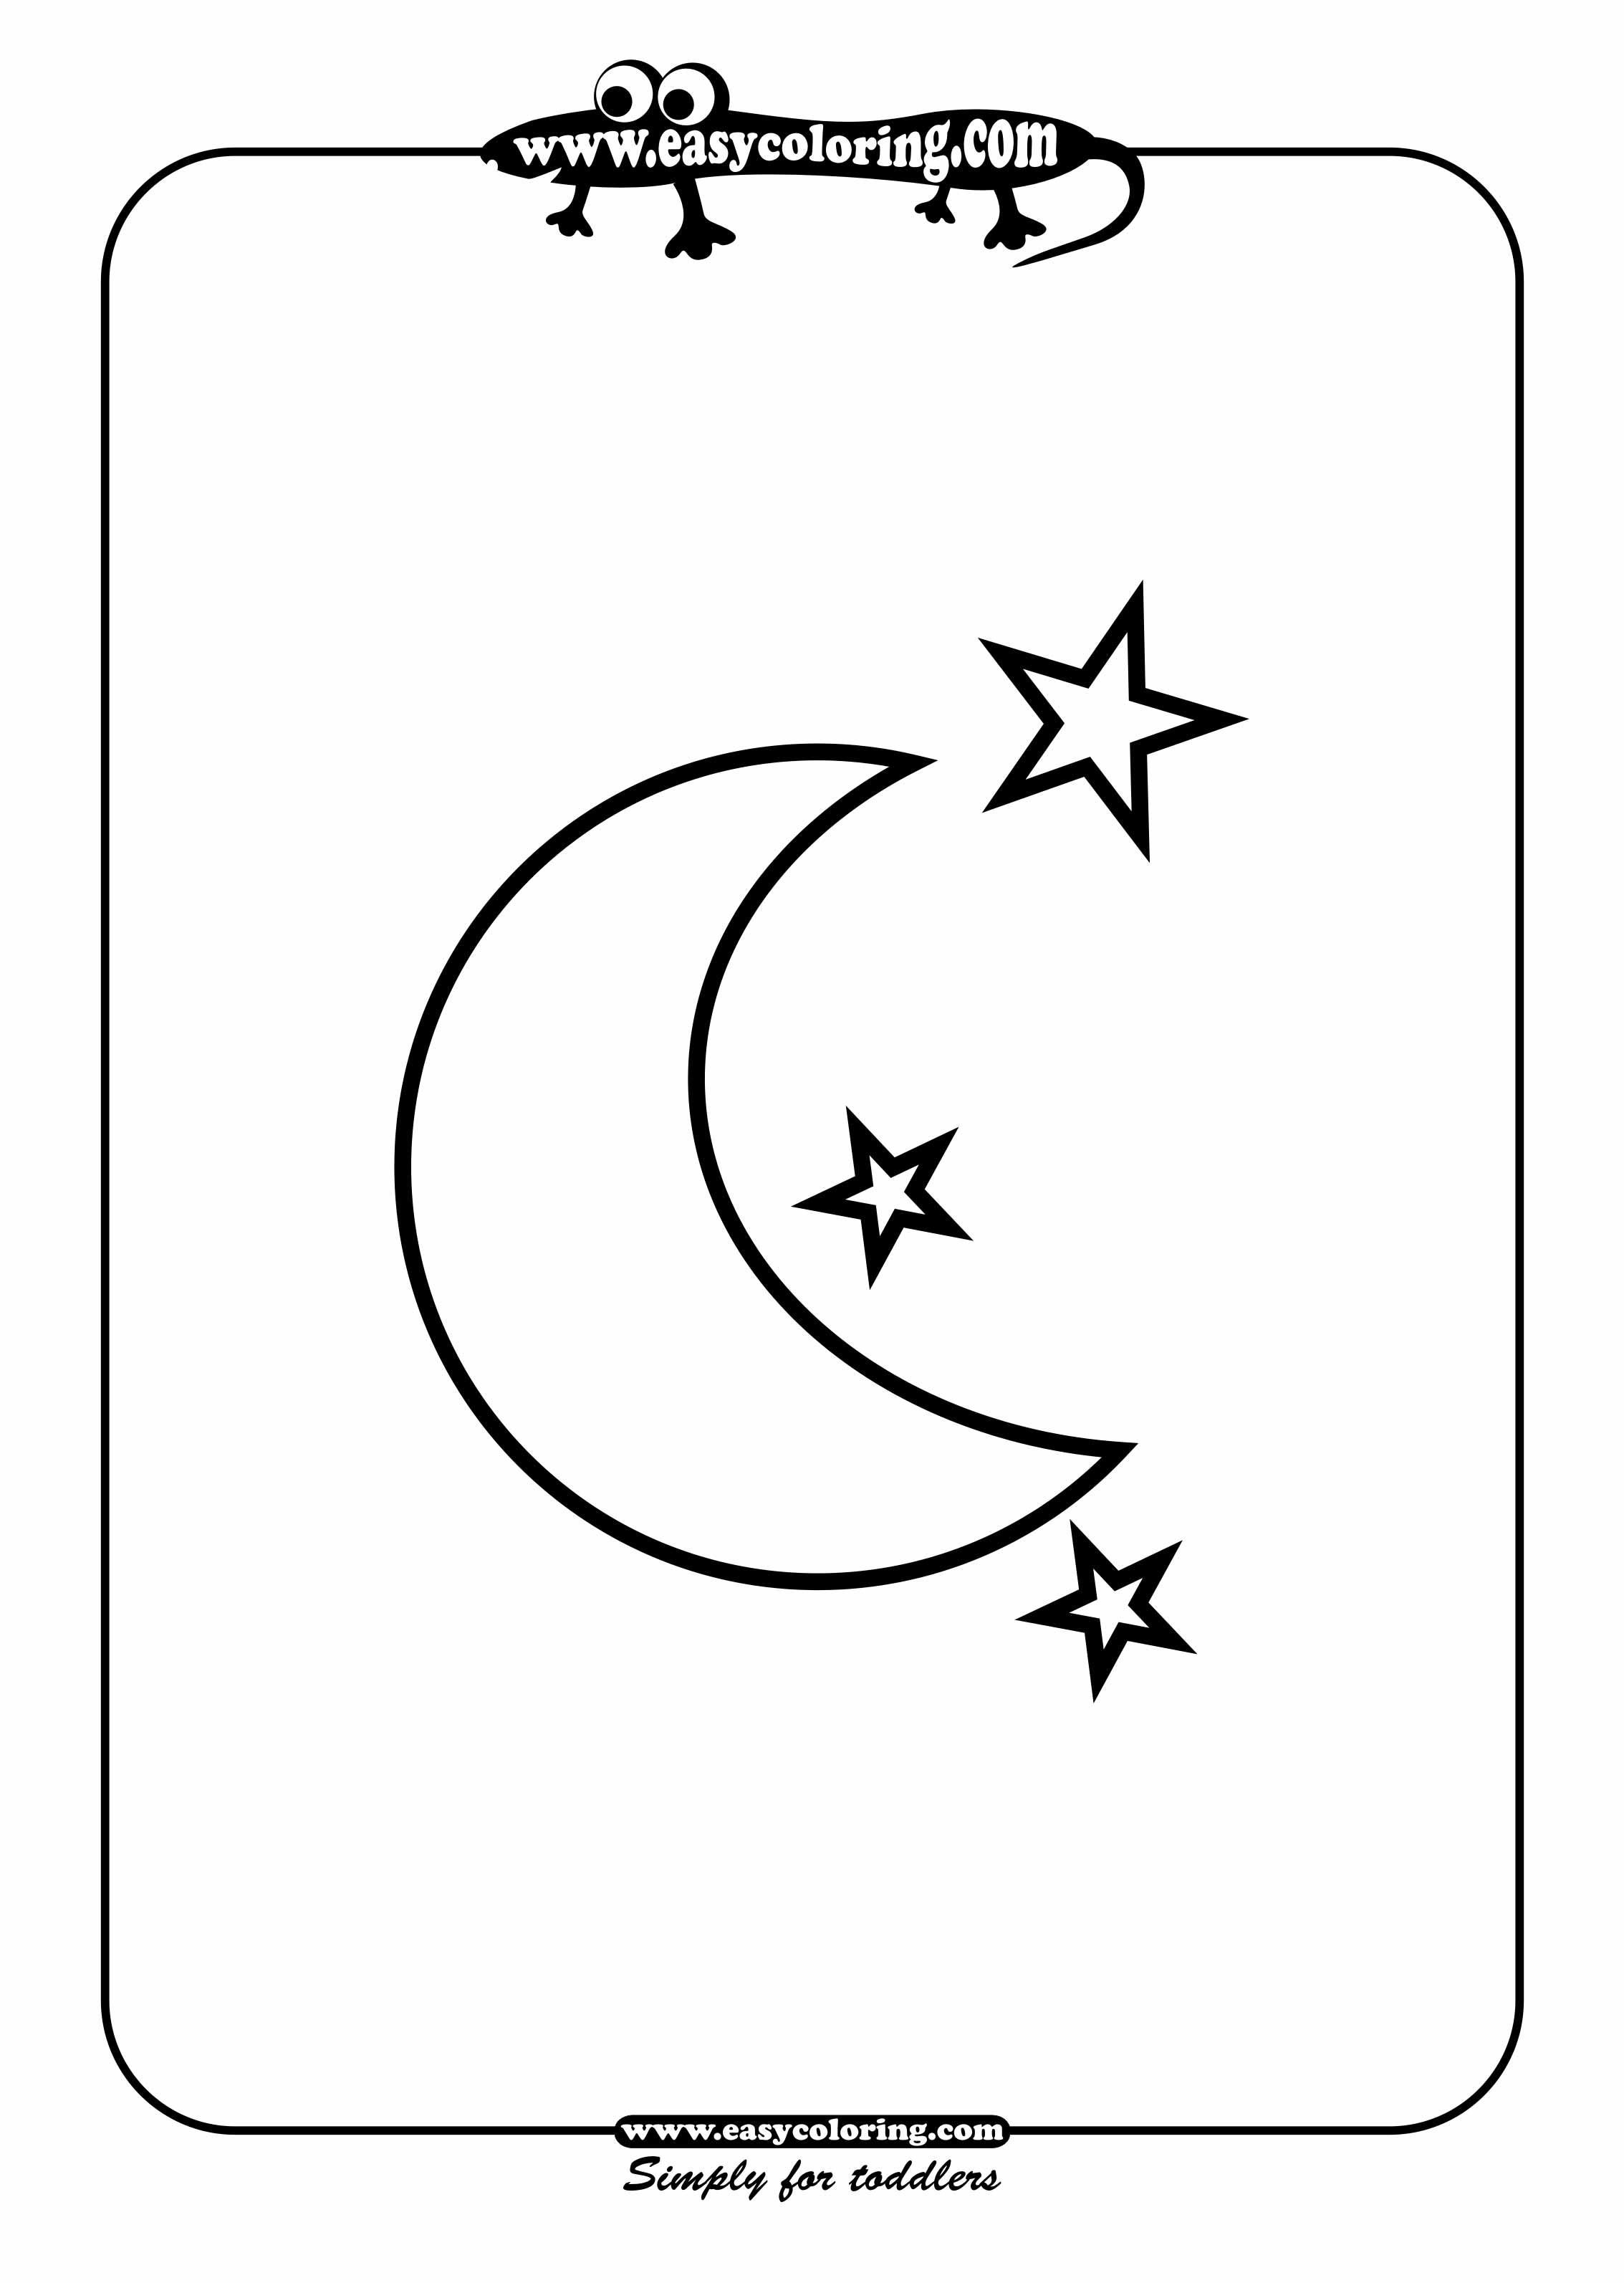 Moon And Stars Easy Coloring Shapes Letter M Week With Images